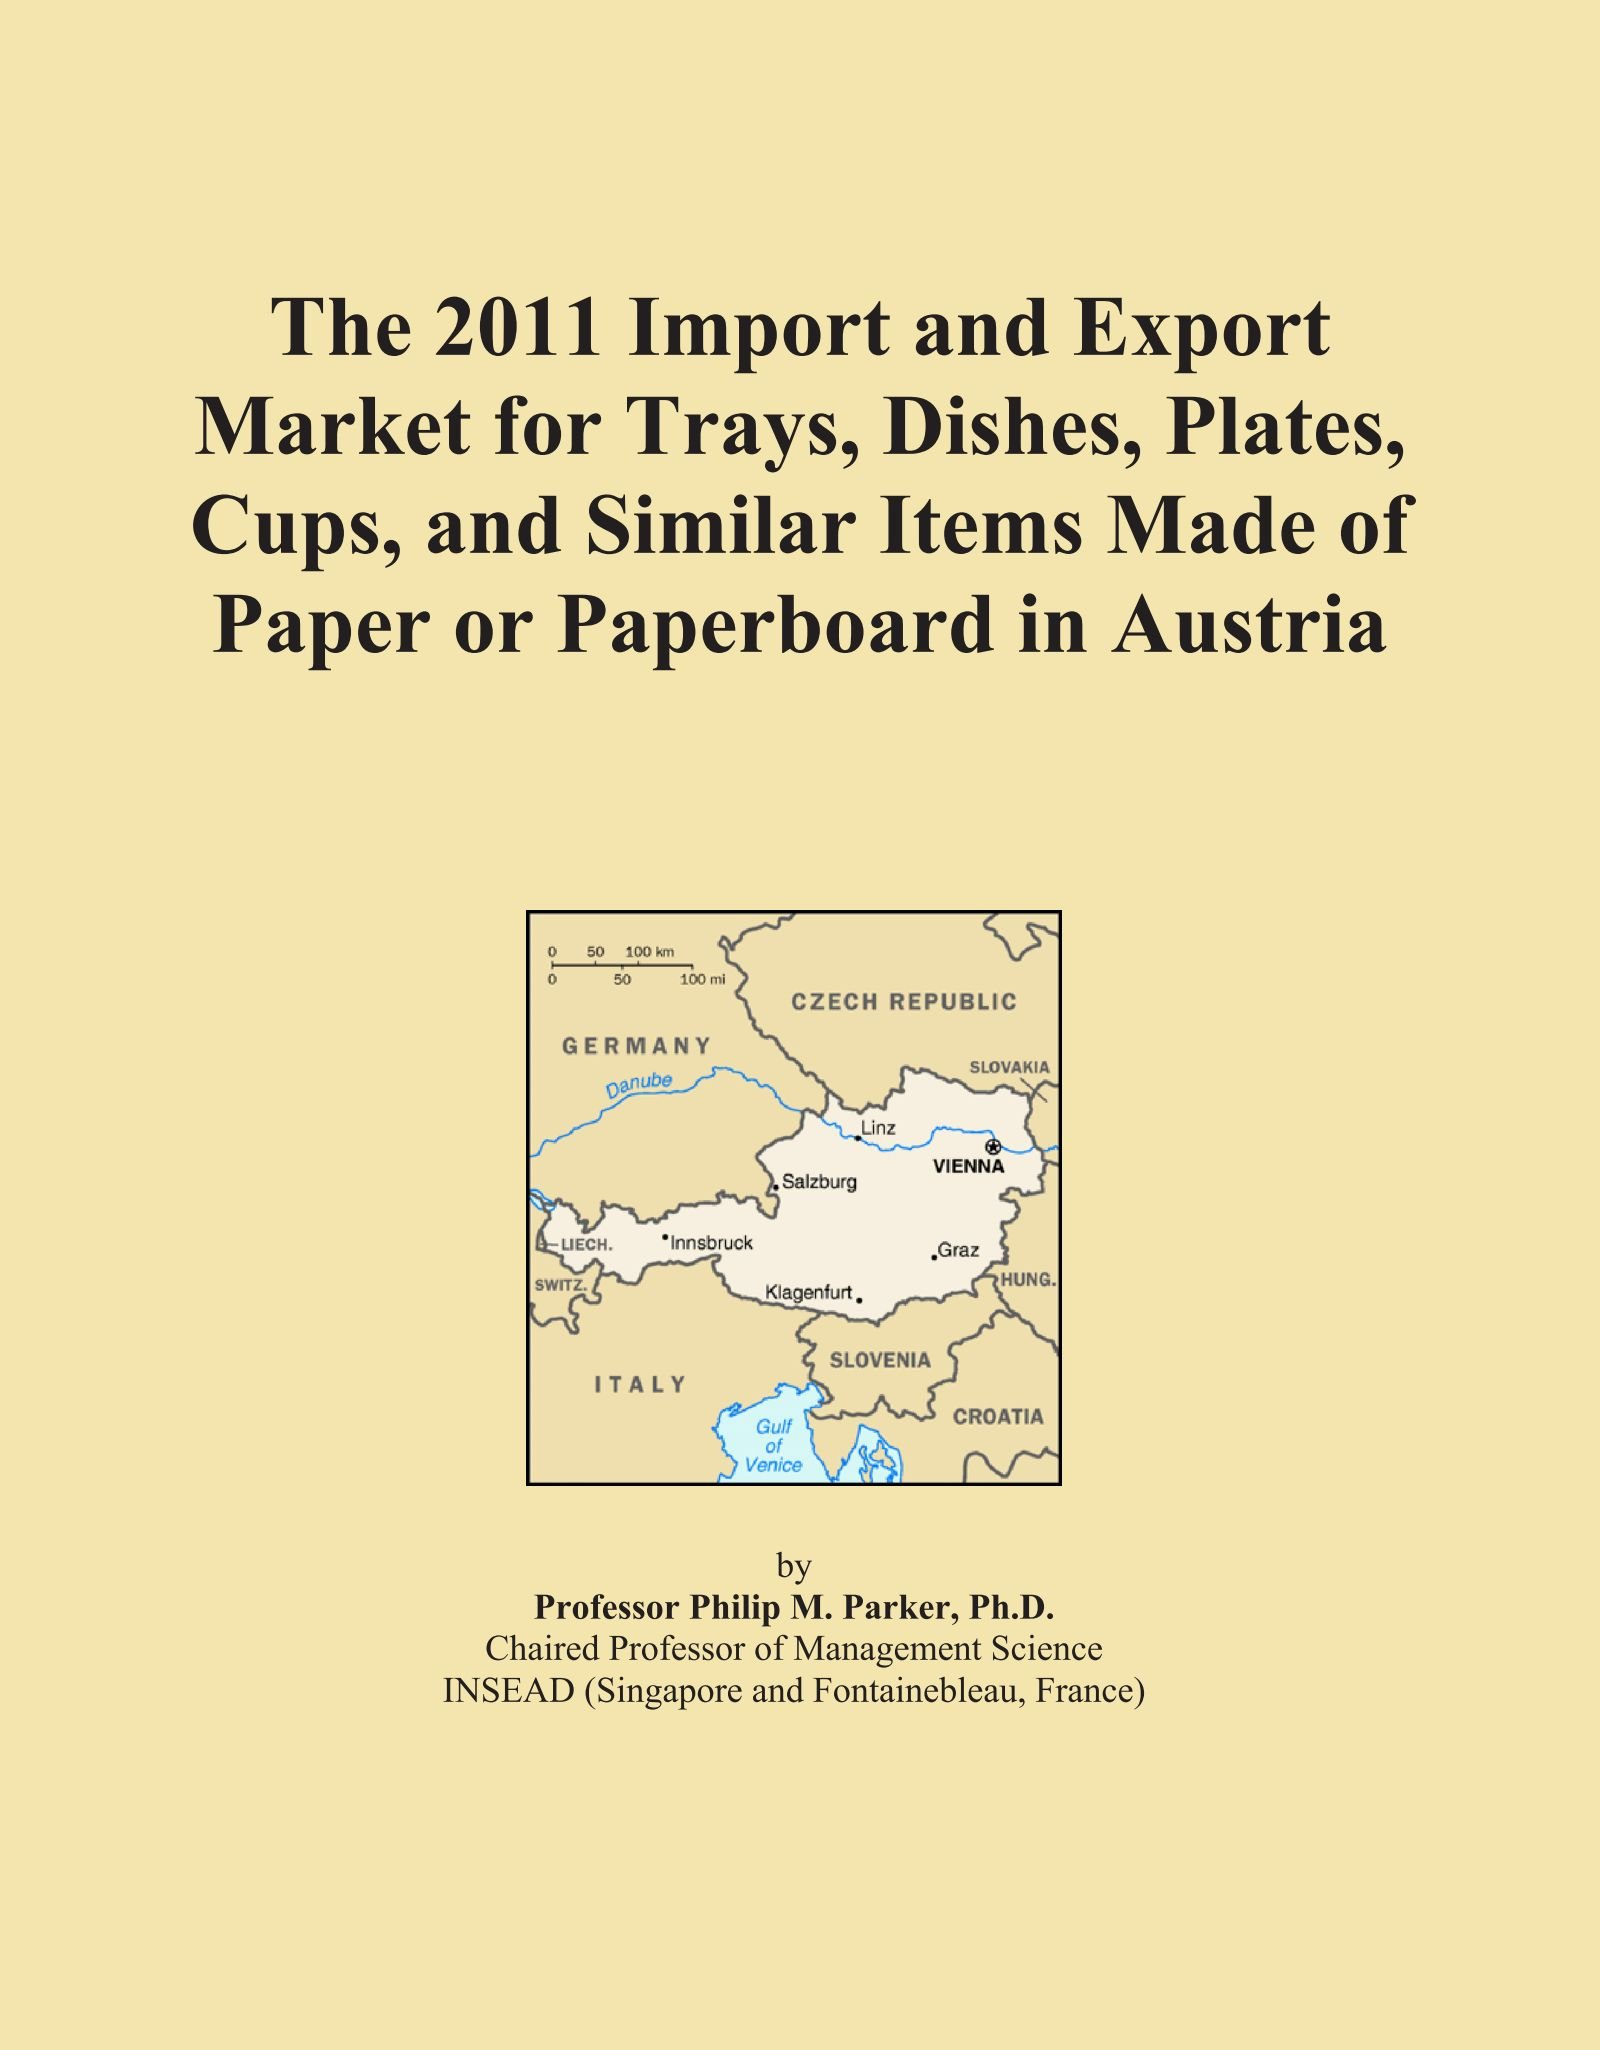 Download The 2011 Import and Export Market for Trays, Dishes, Plates, Cups, and Similar Items Made of Paper or Paperboard in Austria pdf